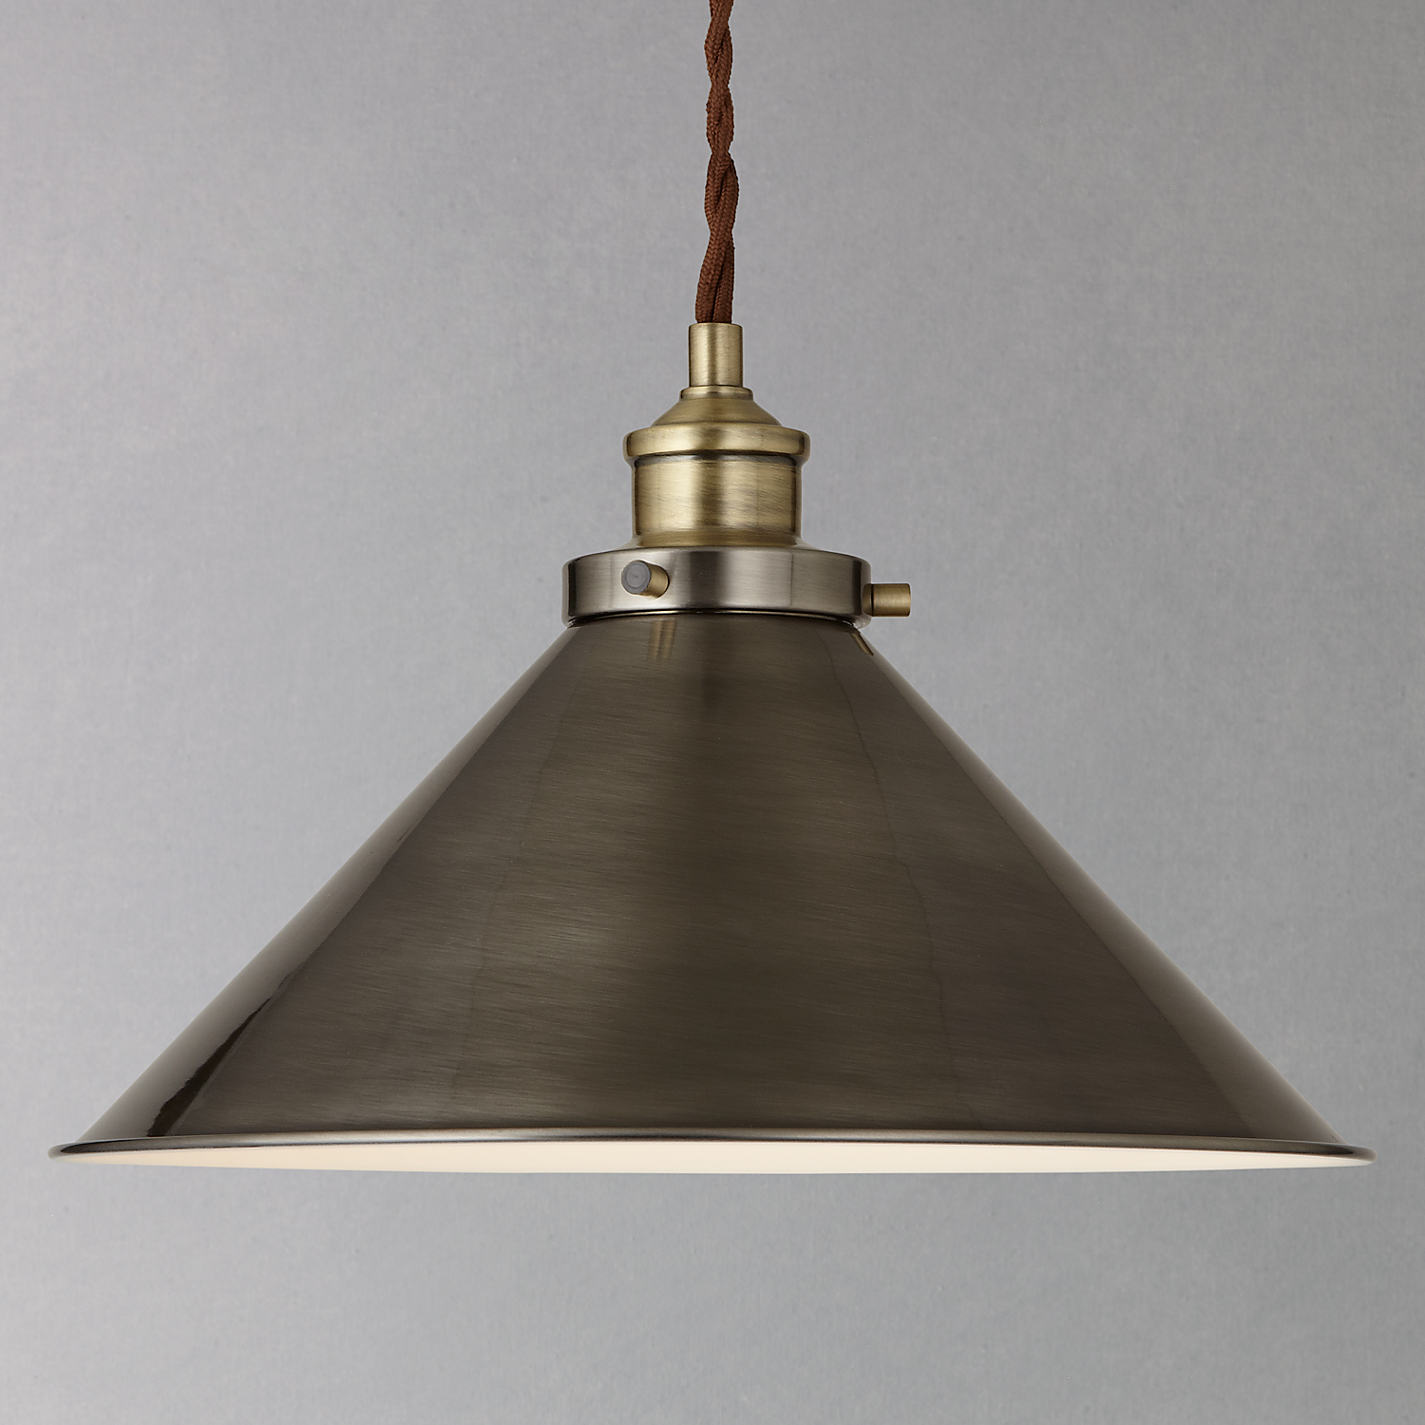 John lewis lighting pendant lighting ideas for Kitchen lighting ideas john lewis